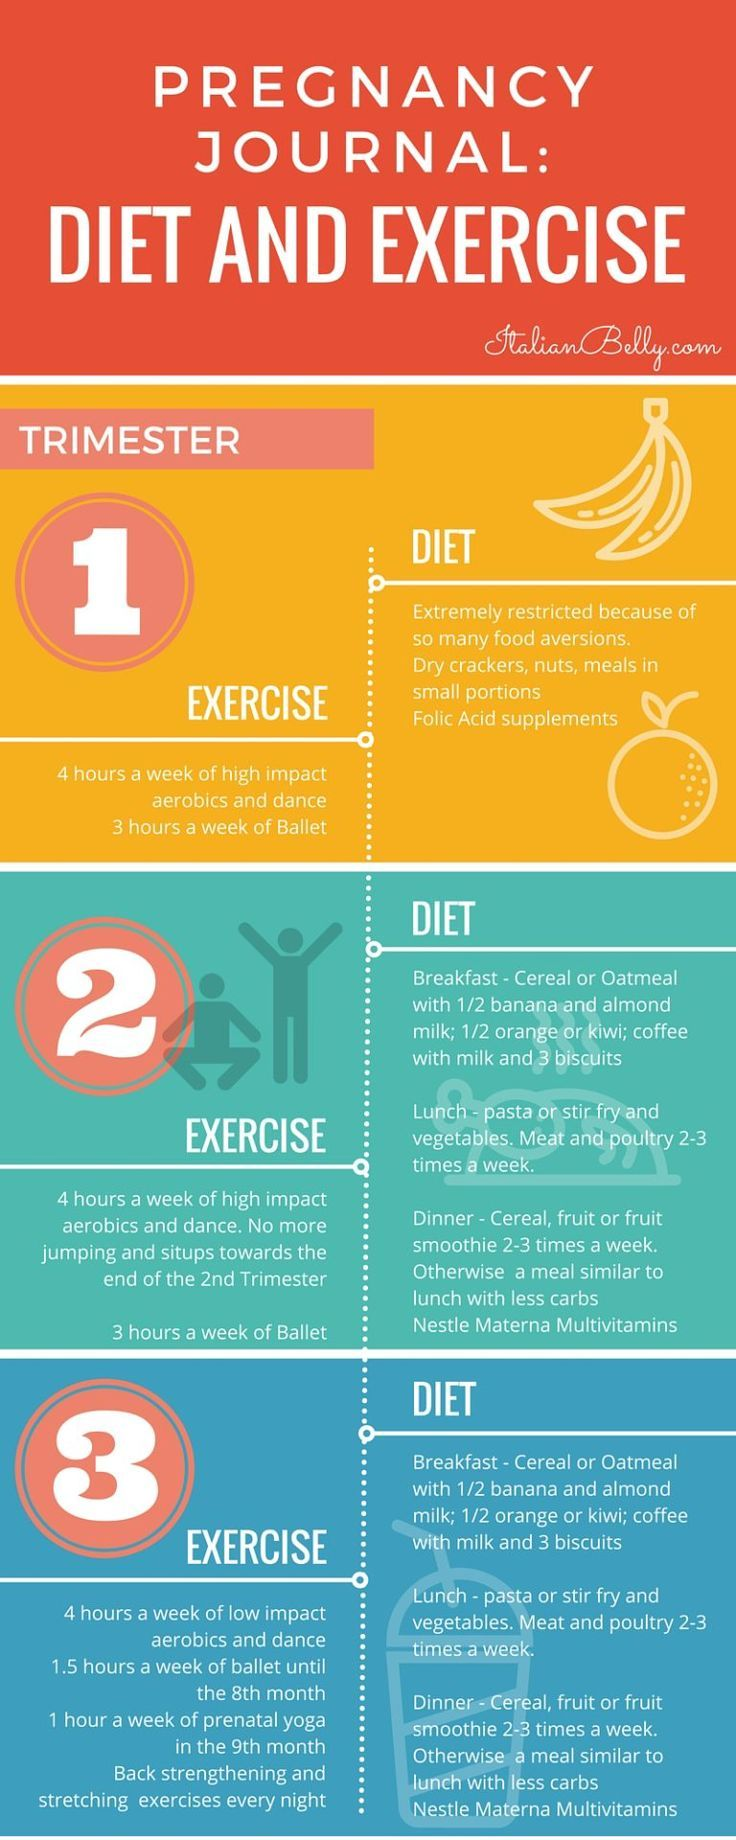 Diet and Exercise by trimester - #Diet #Exercise # ...